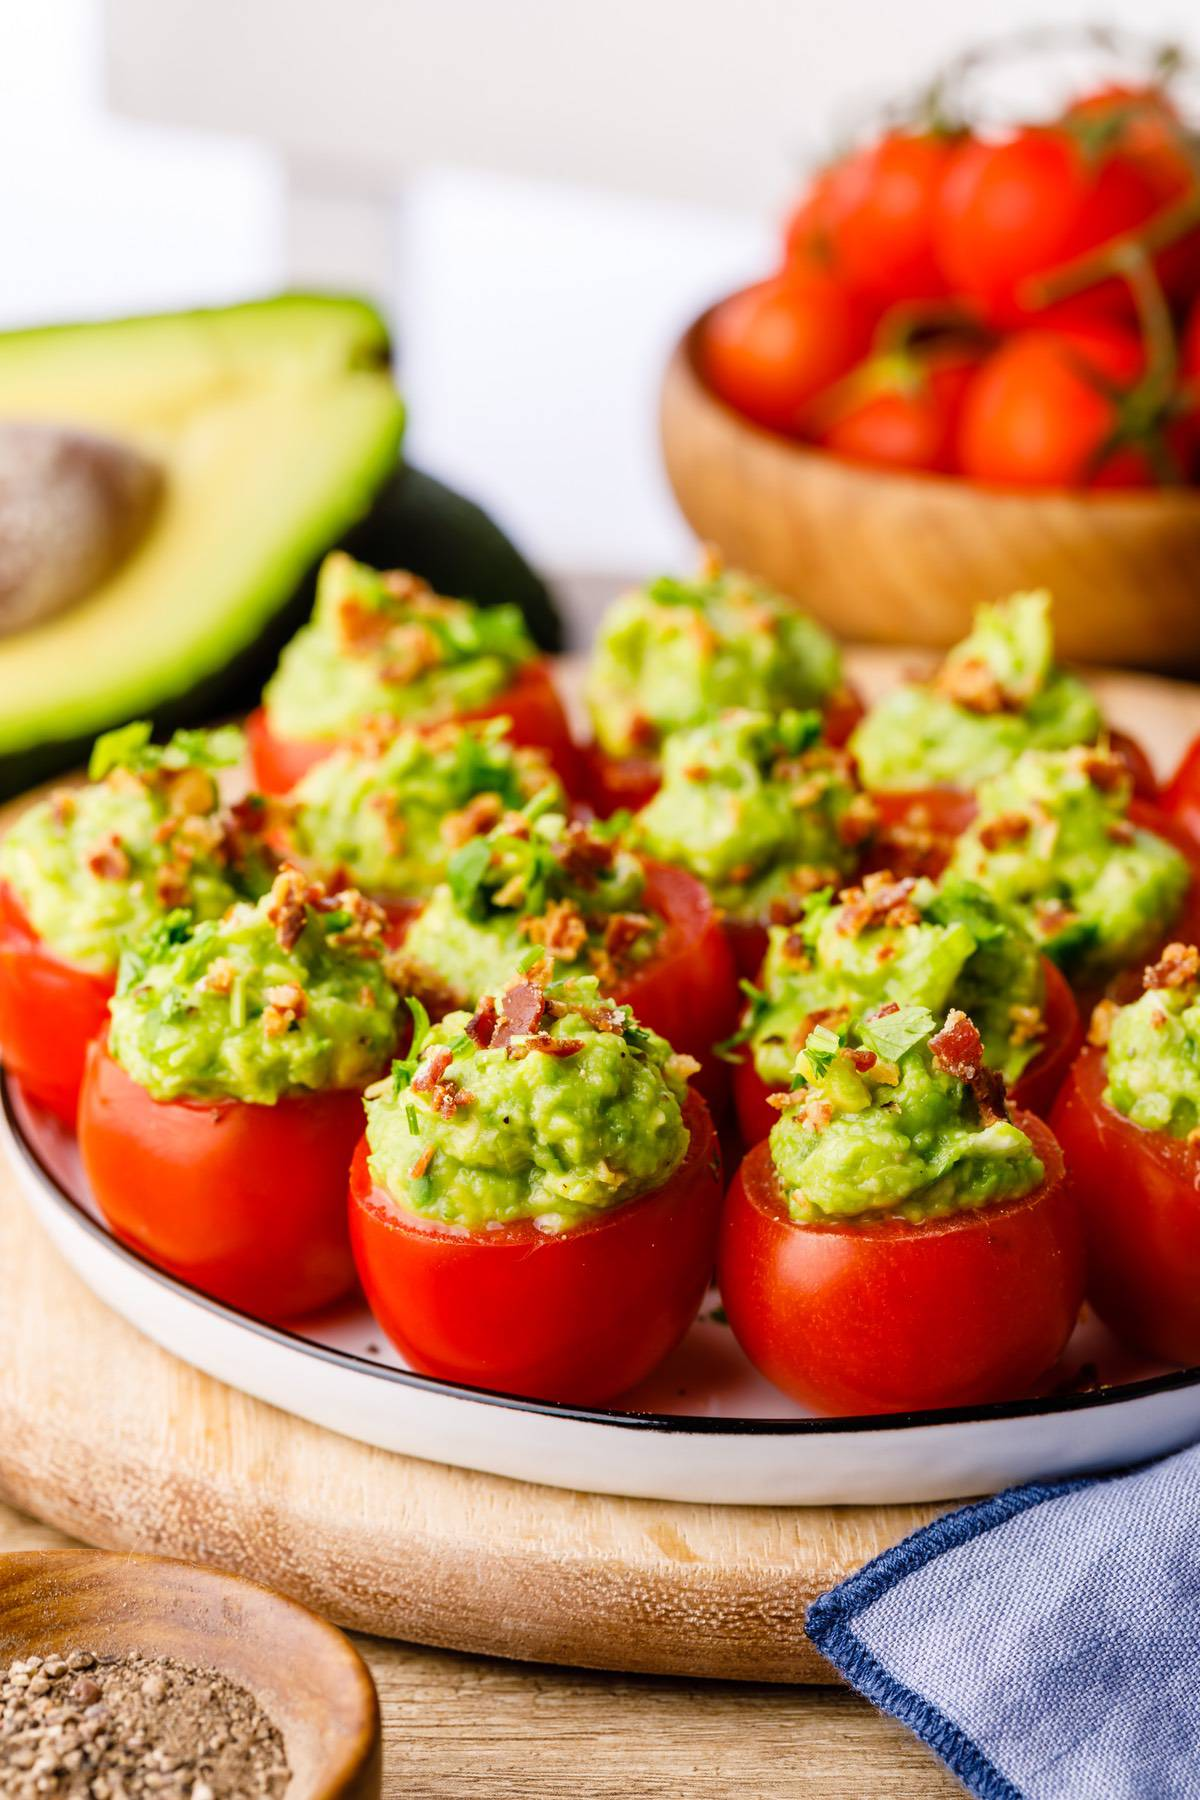 Home.fit blt-tomato-bites-3 Low Carb Guacamole Stuffed BLT Tomato Bites